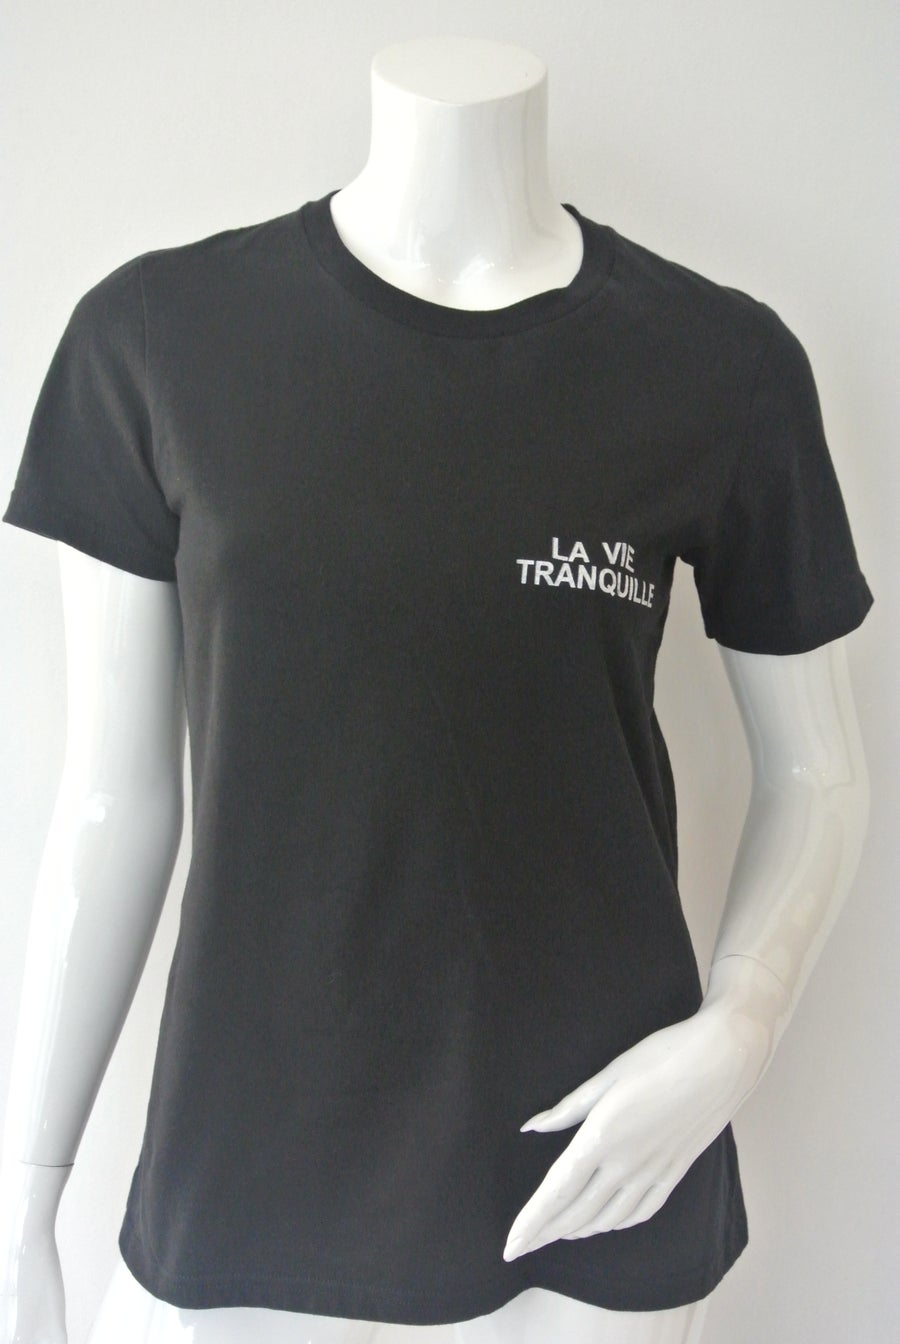 Image of T-shirt 'la vie tranquille""